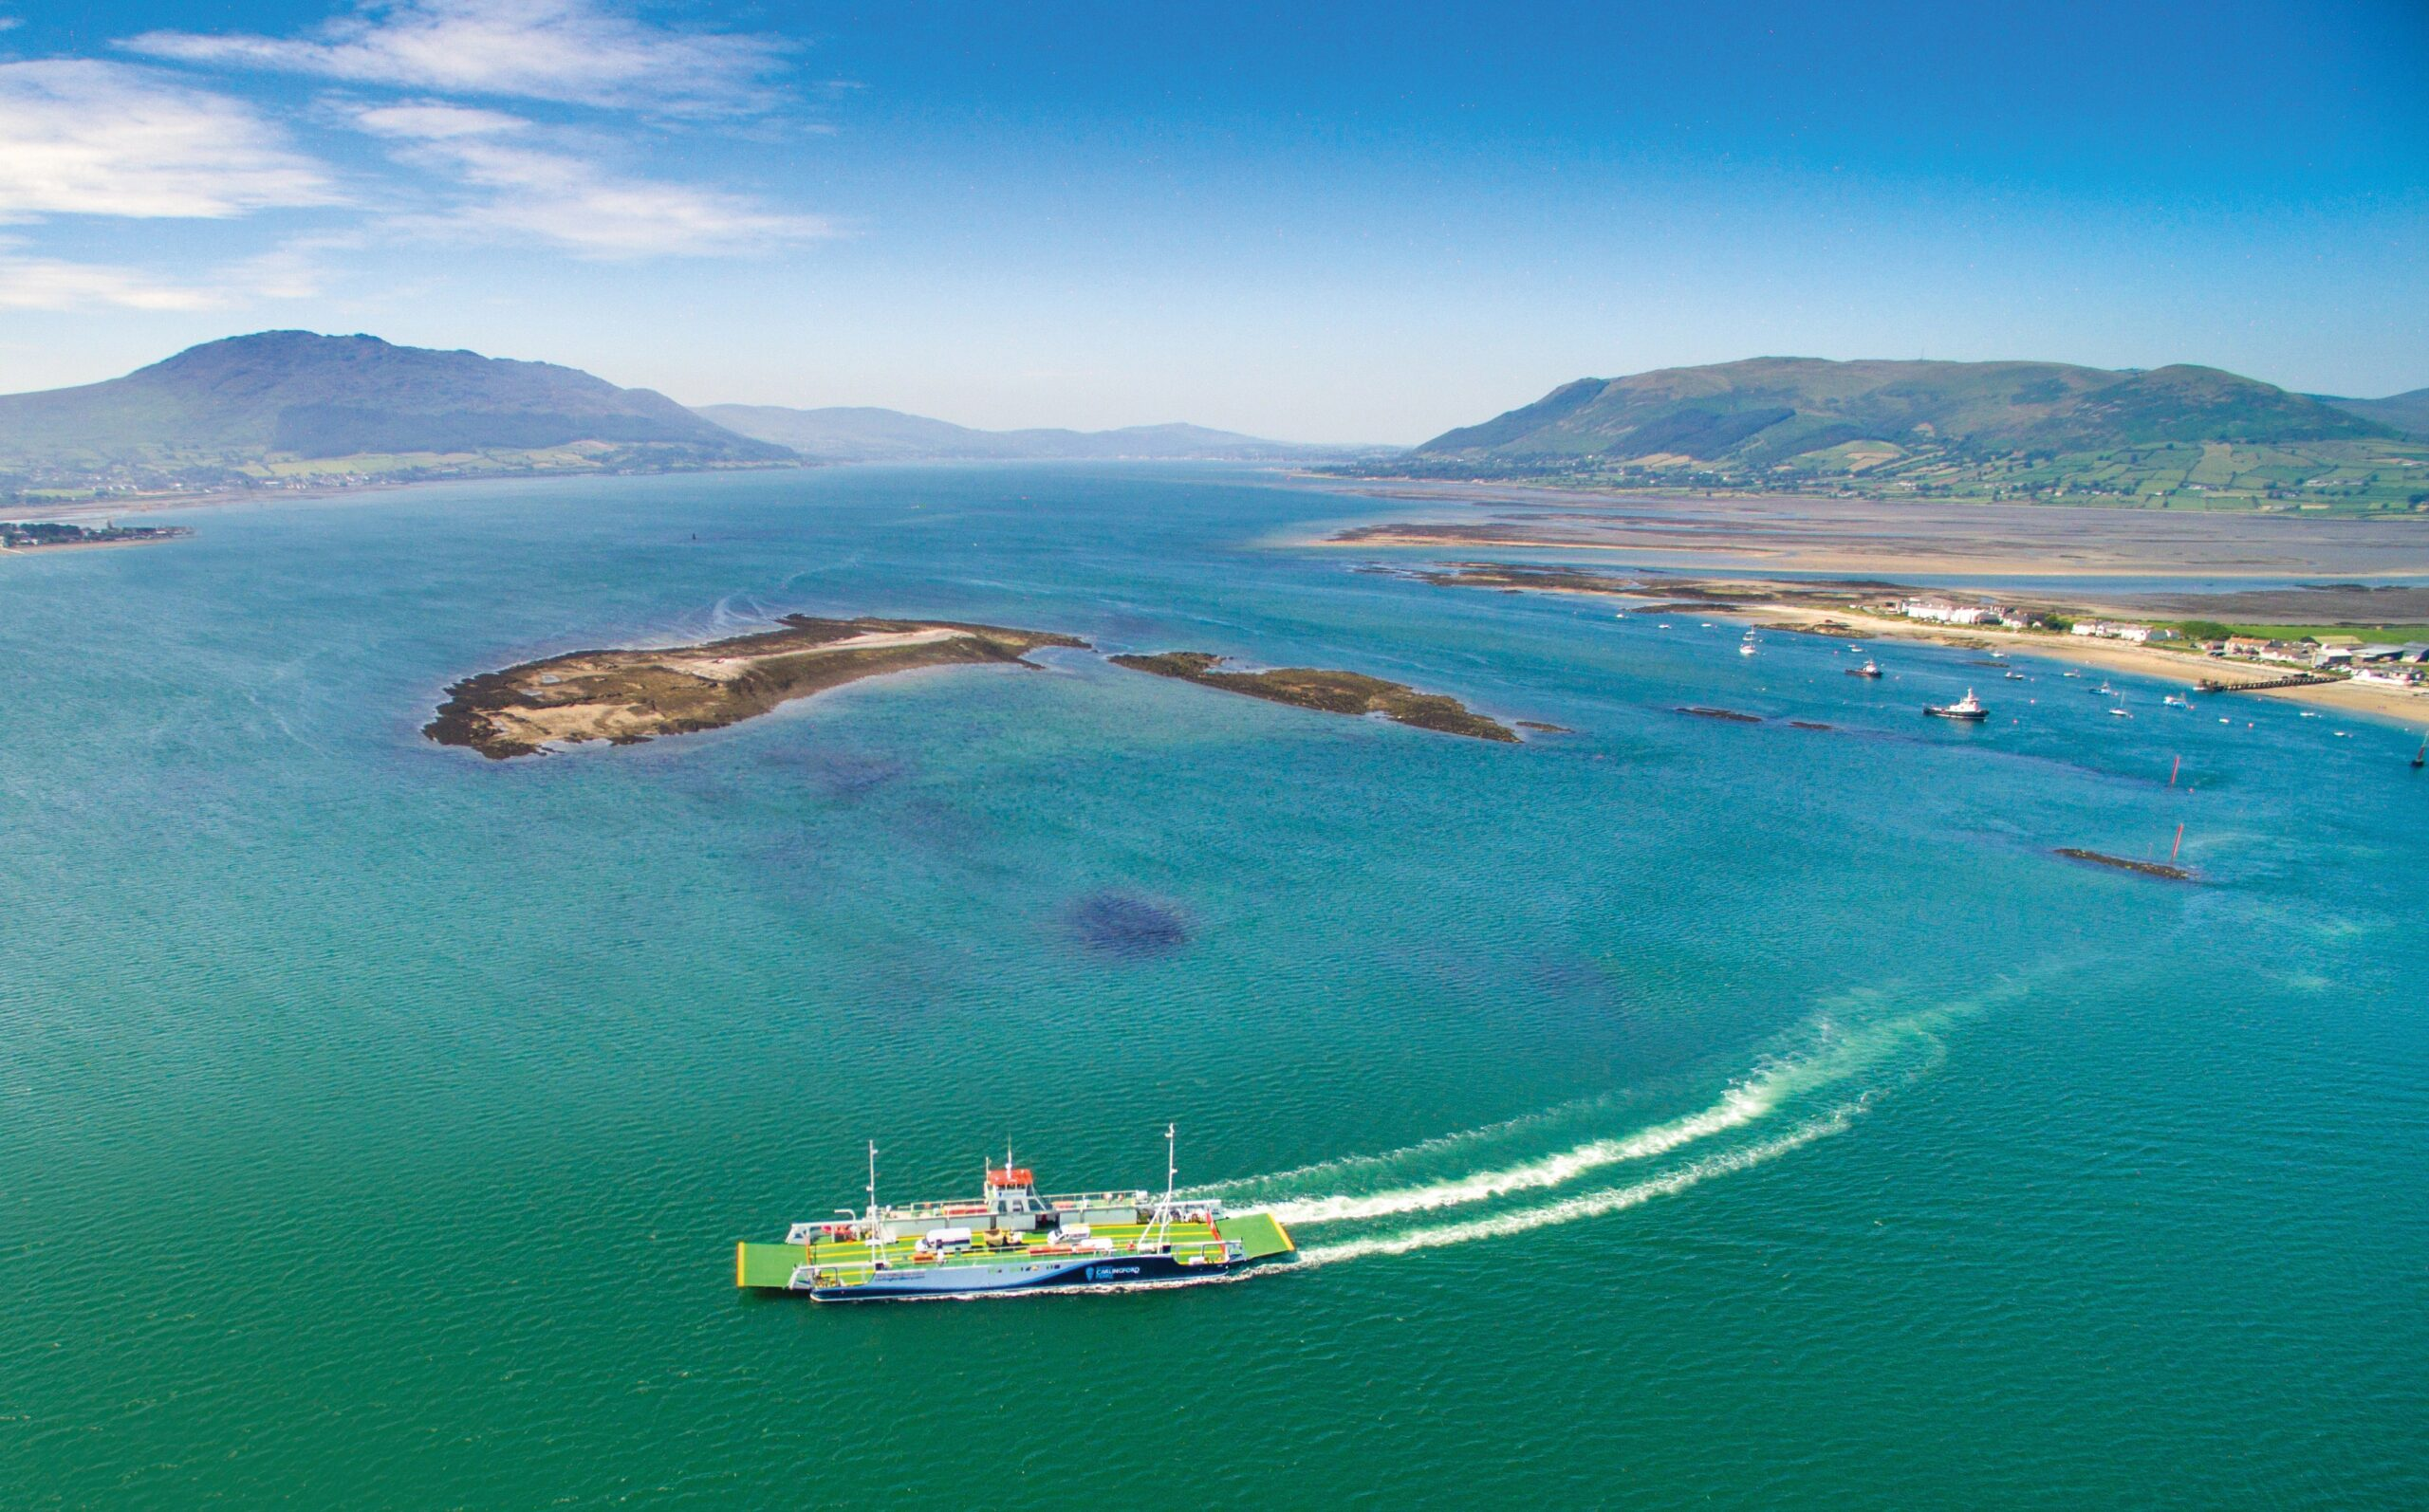 Cross-border car ferry service across Carlingford Lock to reopen  - Newry Times - newry news online